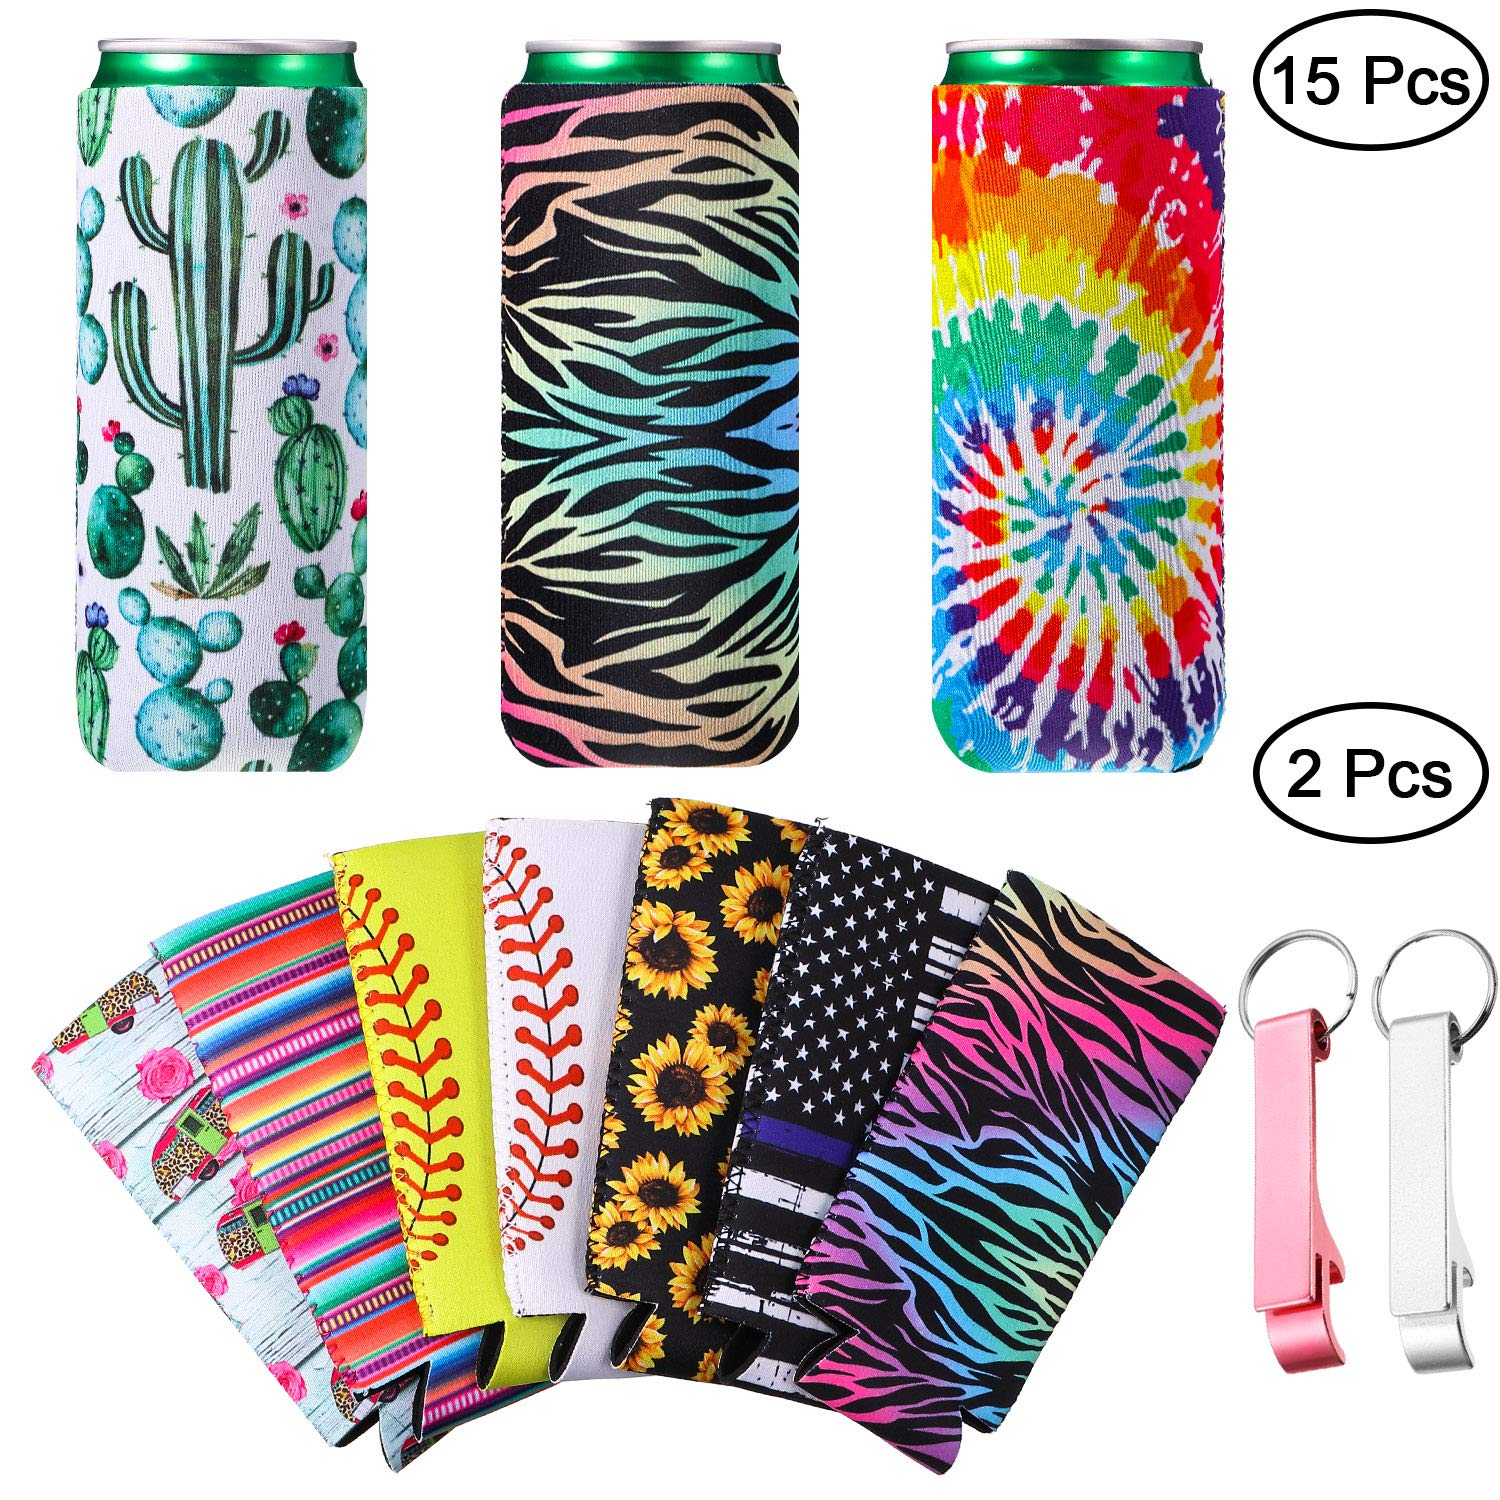 15 Pieces Neoprene Beer Can Cooler,Slim Beer Can Cooler,Can Sleeve Coolers Foldable Tall Beer Holders Bottle Insulator Sleeve for 12 oz Drink Beer Cans and 2 Pieces Can Openers with Key Ring